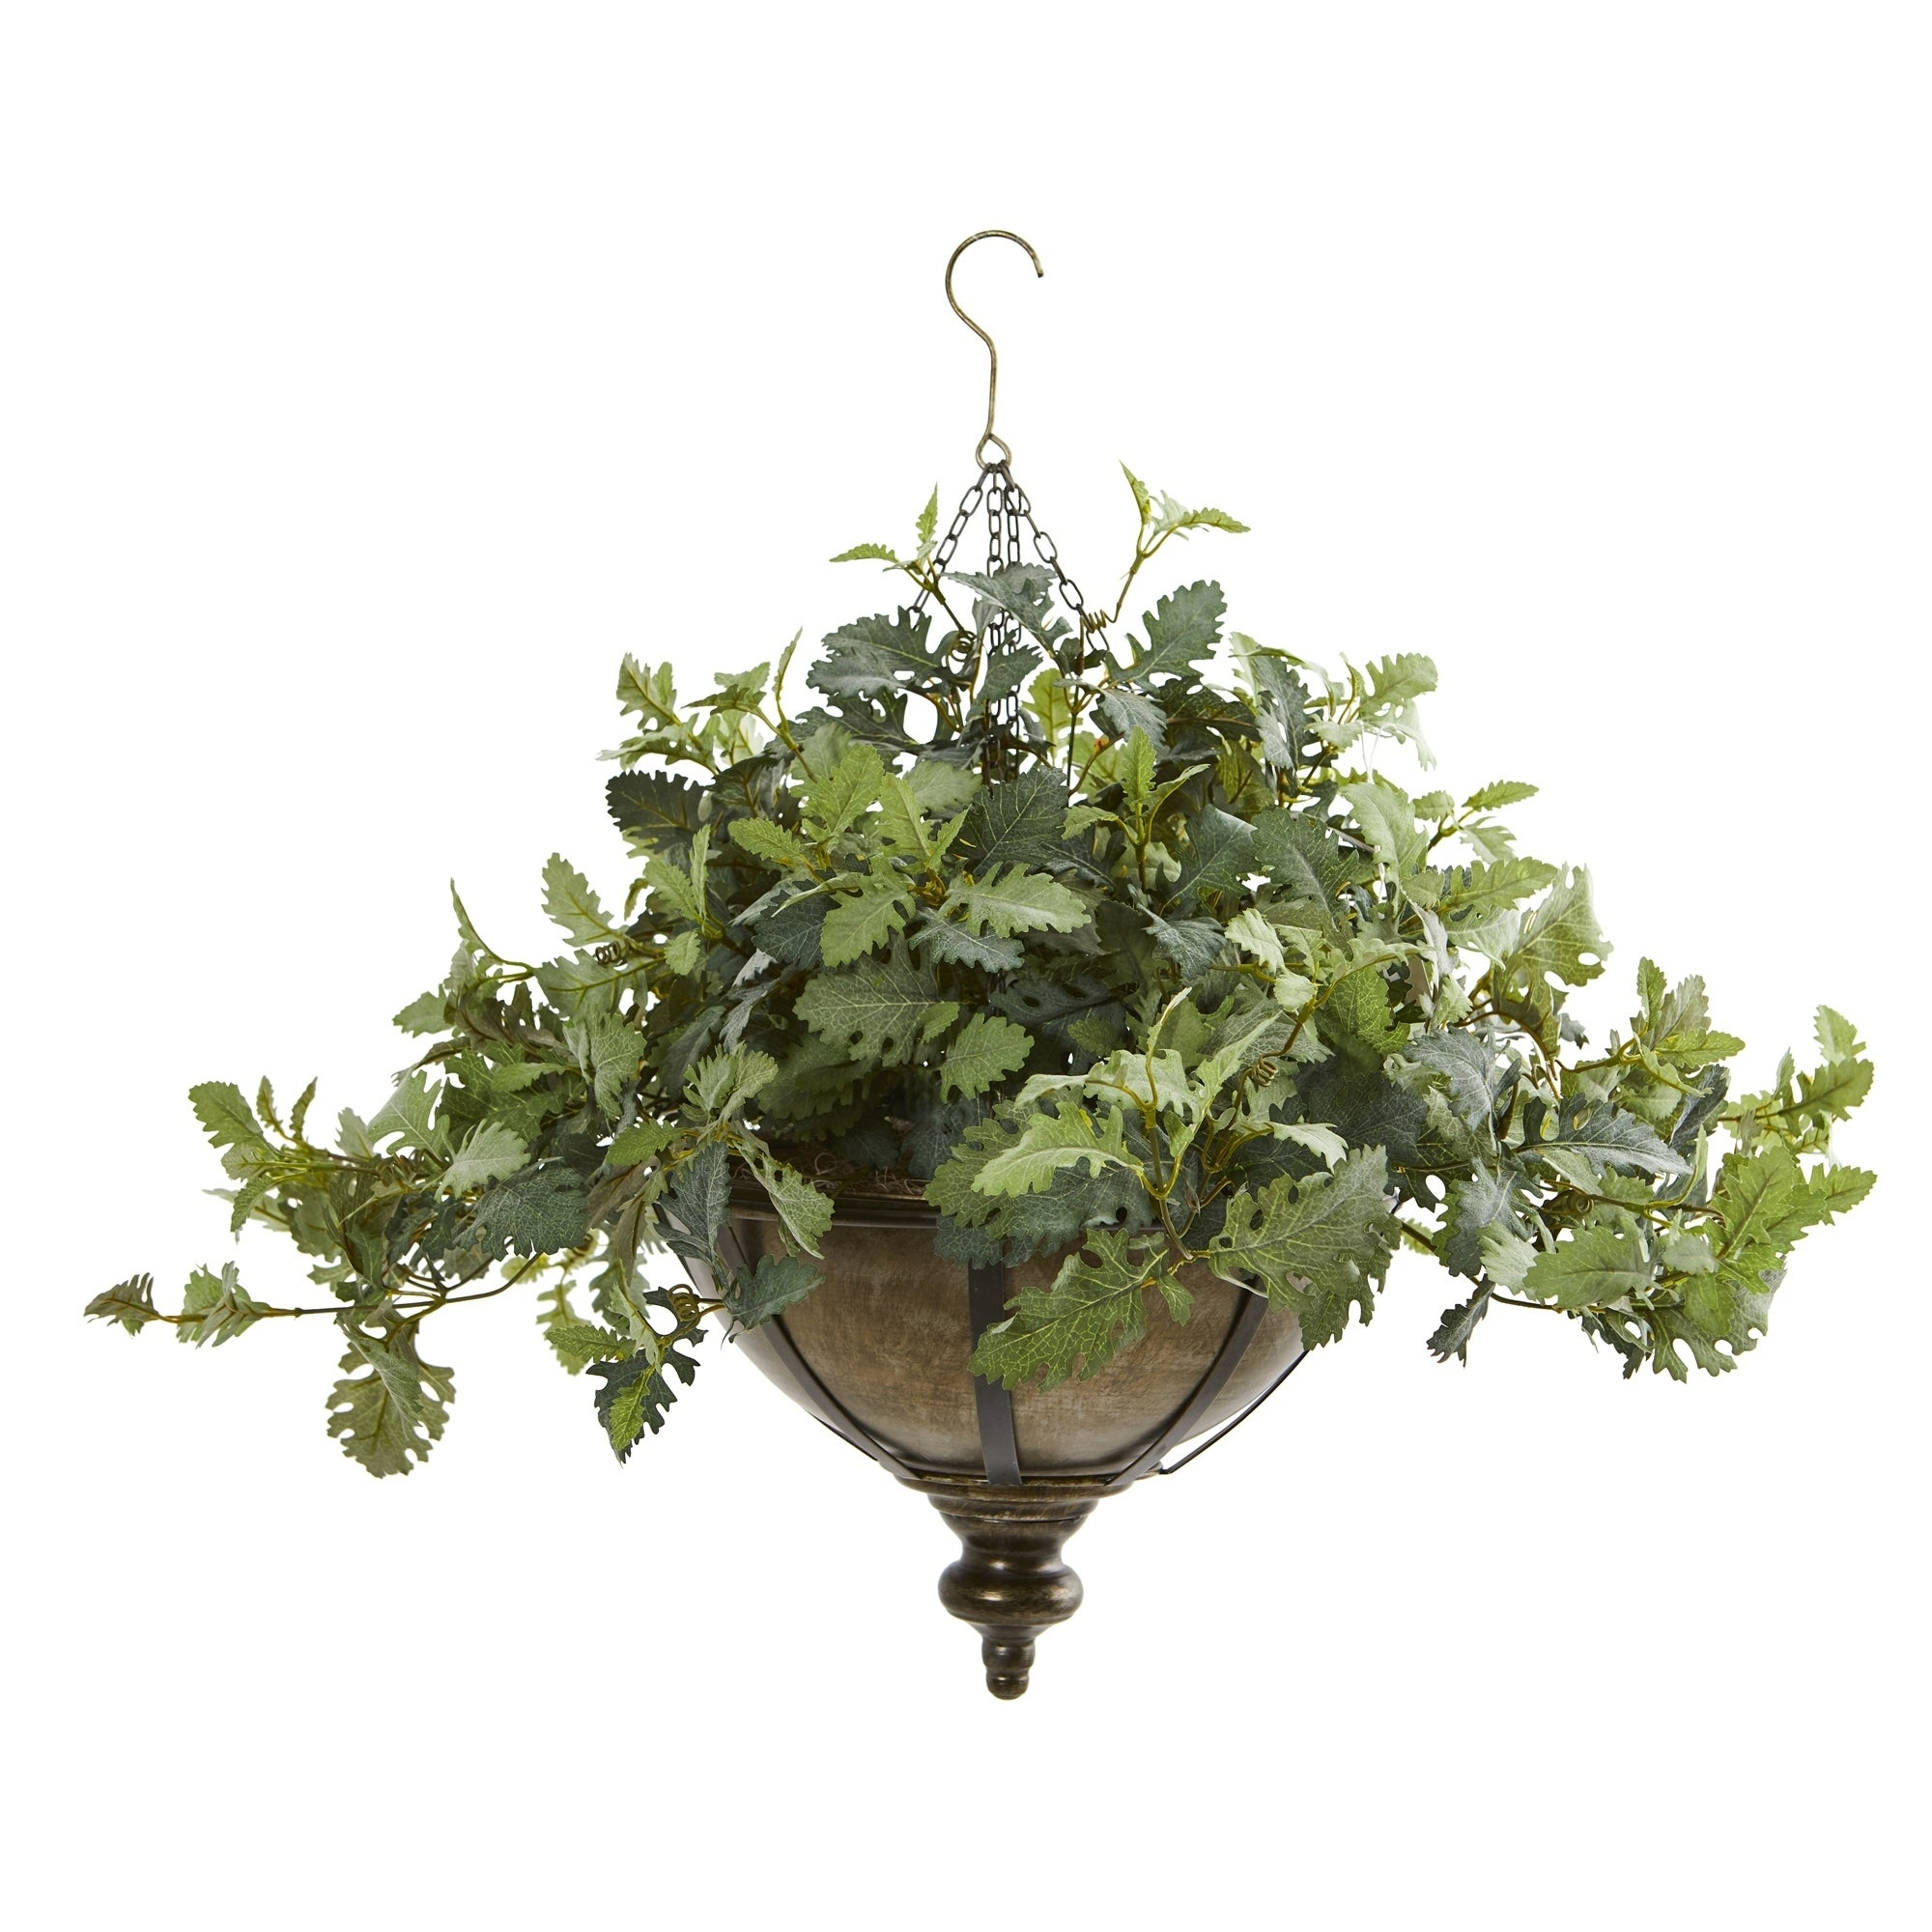 23 Dusty Miller Artificial Plant in Hanging Bowl